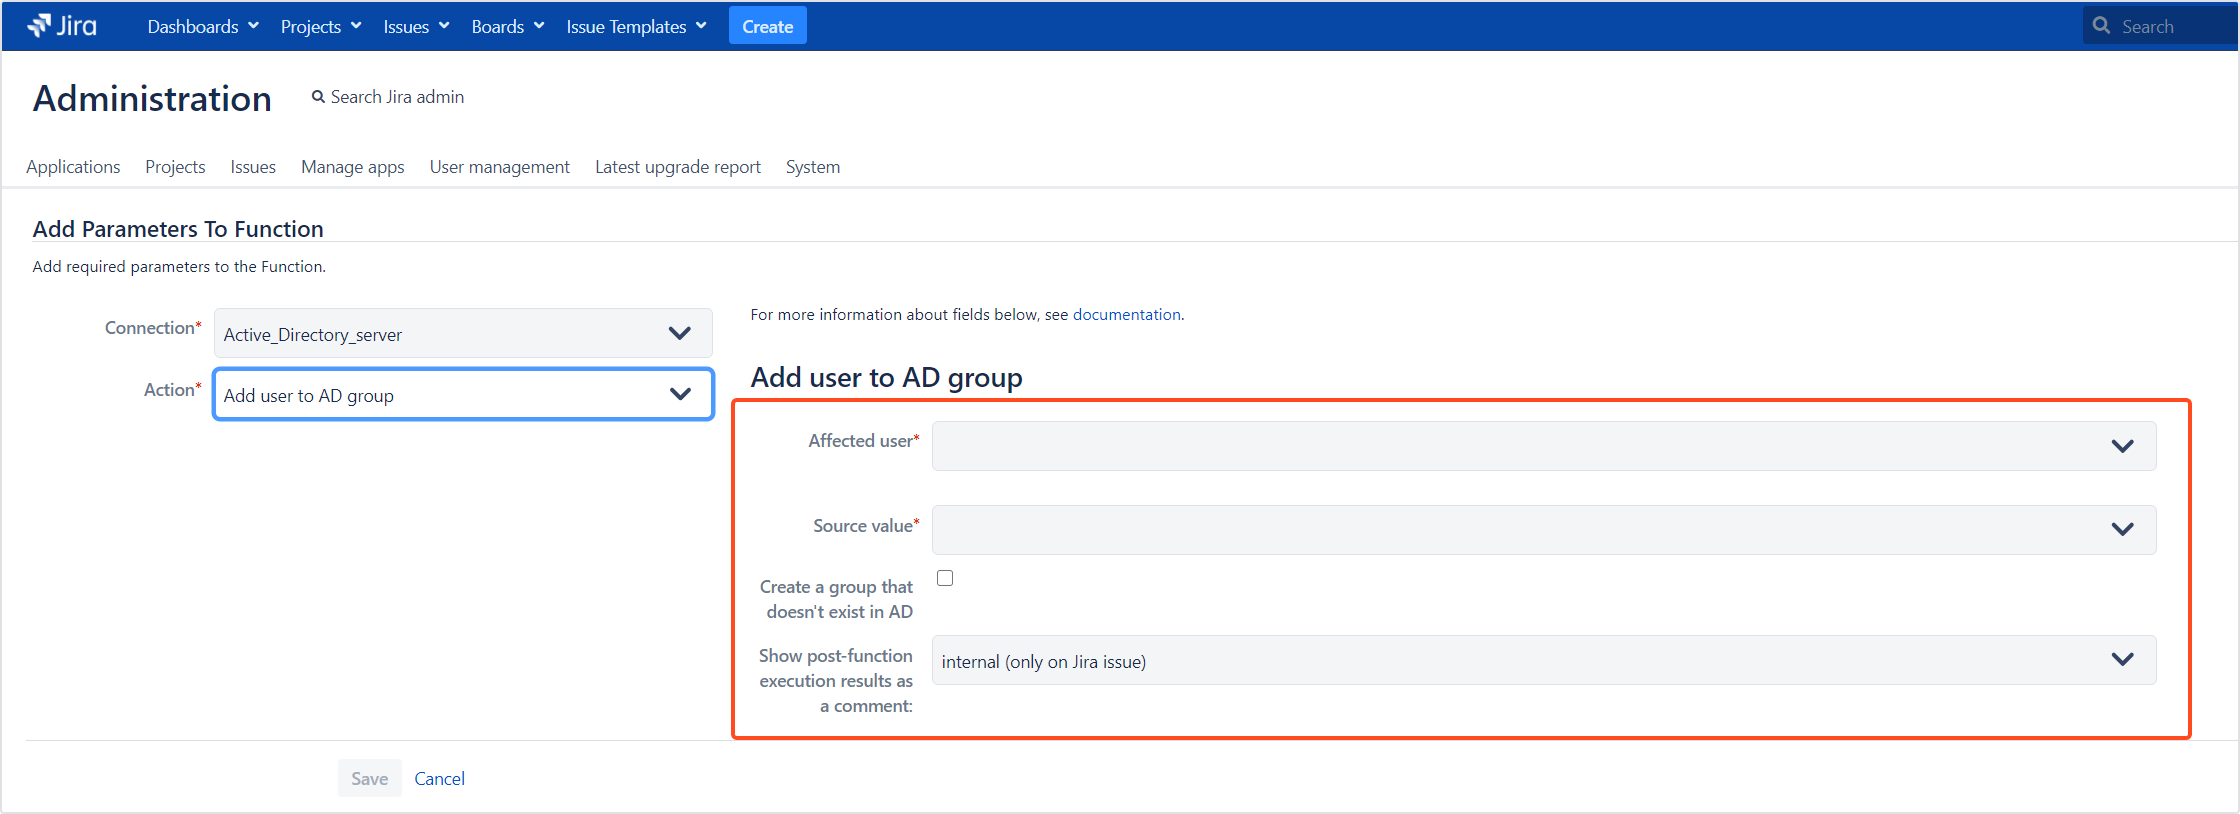 Active Directory Attributes Sync for Jira - Update Data: Add user to AD group